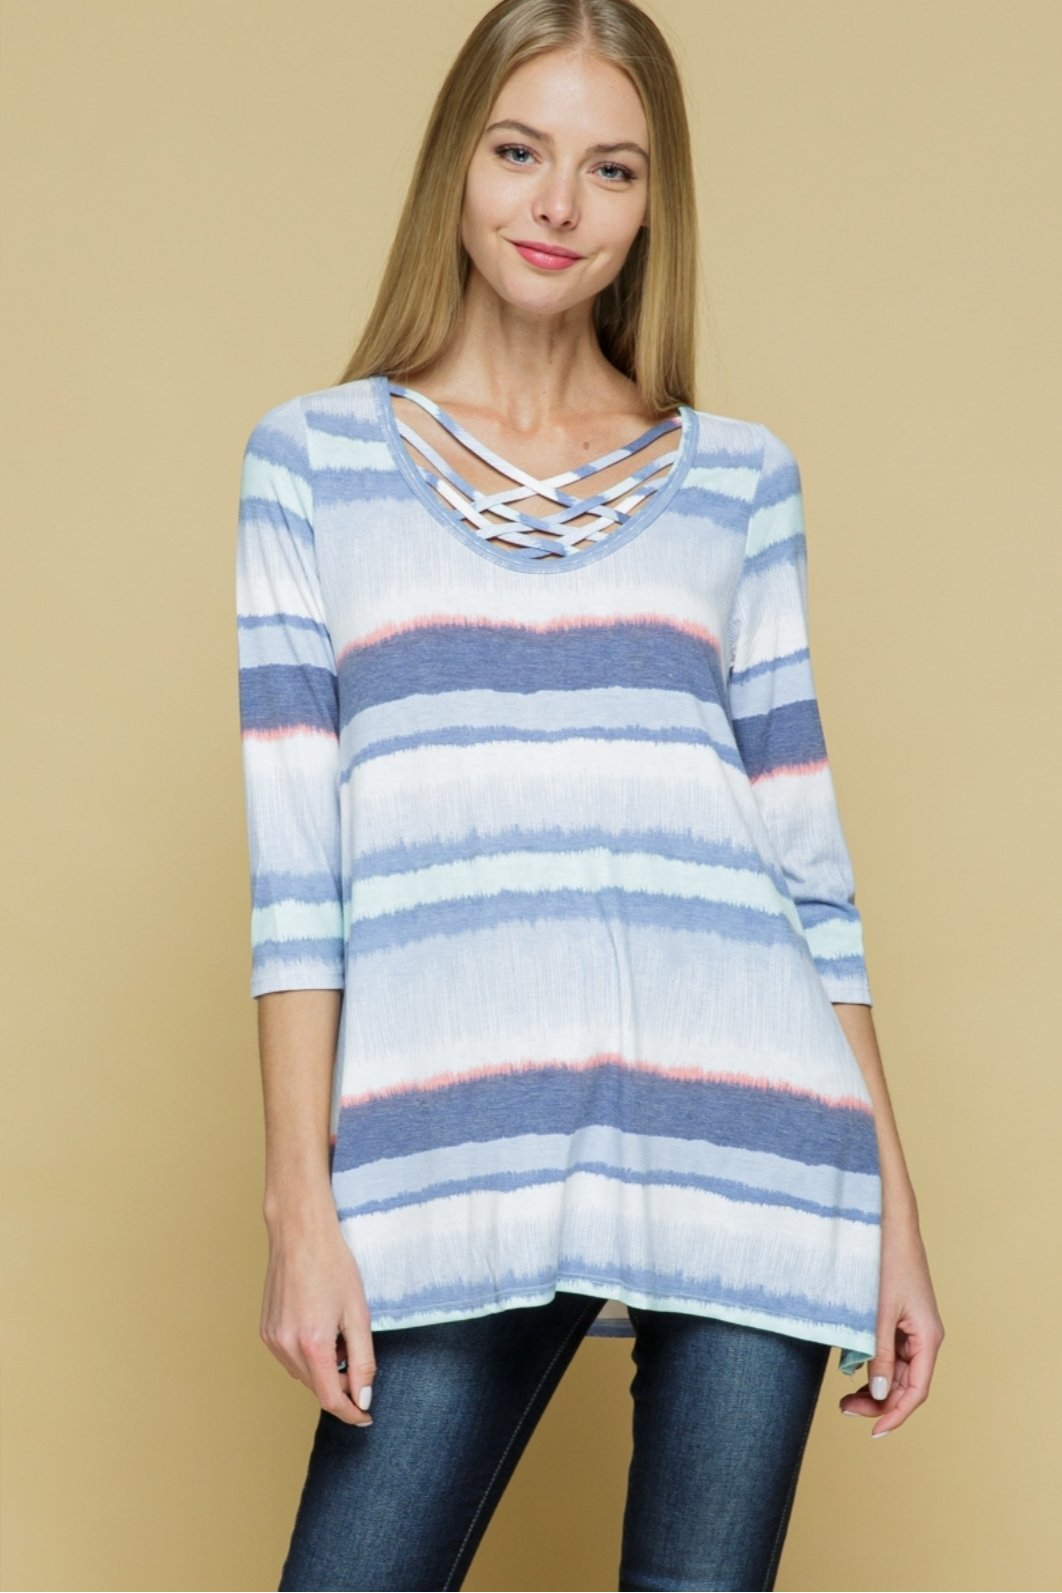 Mariah striped criss cross top